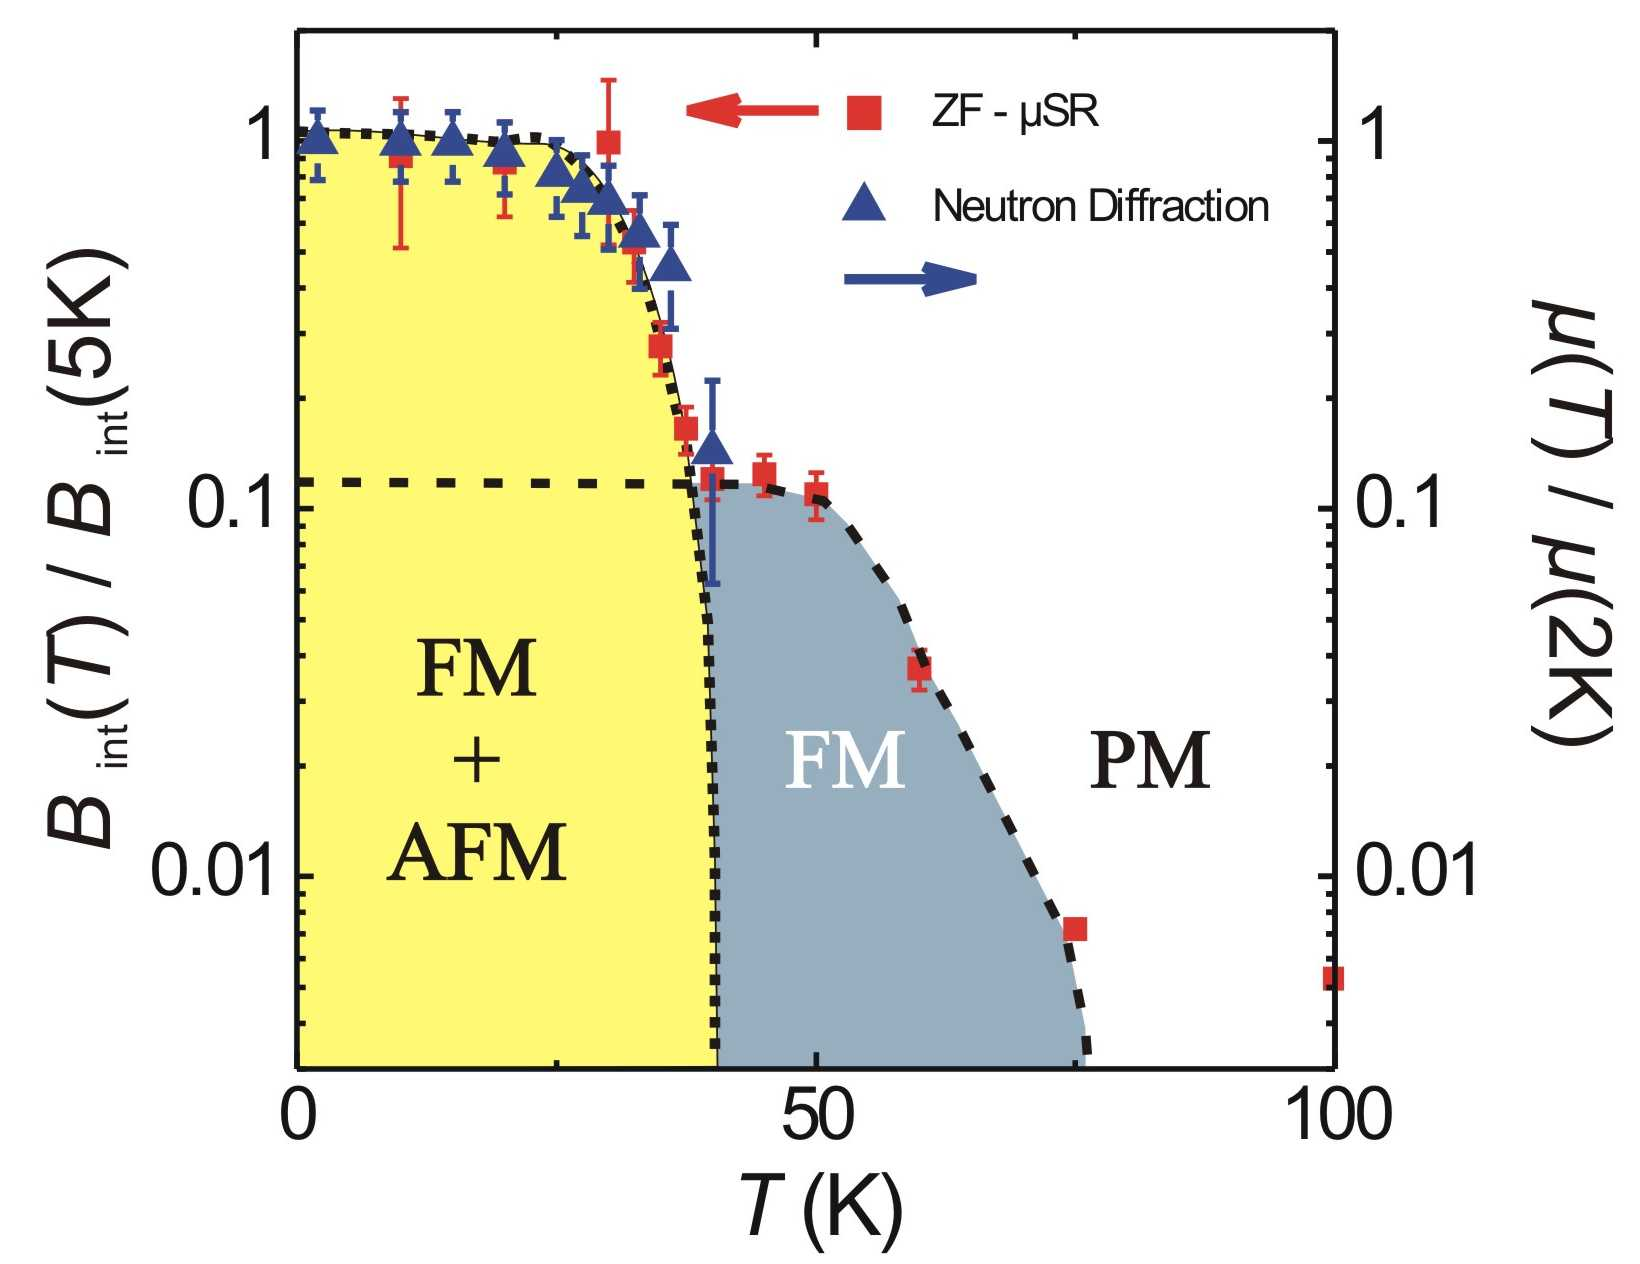 Temperature dependence of the normalized internal magnetic field B<sub>int</sub>(T)/B<sub>int</sub>(5K) as derived from ZF-&mu;SR muon spin relaxation measurements with low energy muons implanted with 4.1 keV into a 56-nm-thin (110) LuMnO<sub>3</sub> thin film. For comparison, the normalized magnetic moment &mu;(T)/&mu;(2K) vs T is shown (blue triangle), with µ being proportional to the square root of the integrated neutron intensity. The black dashed lines for the FM and AFM phase are a guide to the eye but also indicate how the temperature dependence of a single order parameter could look like when both orders coexist. From Fig. 1 in ref. <strong>4</strong>.